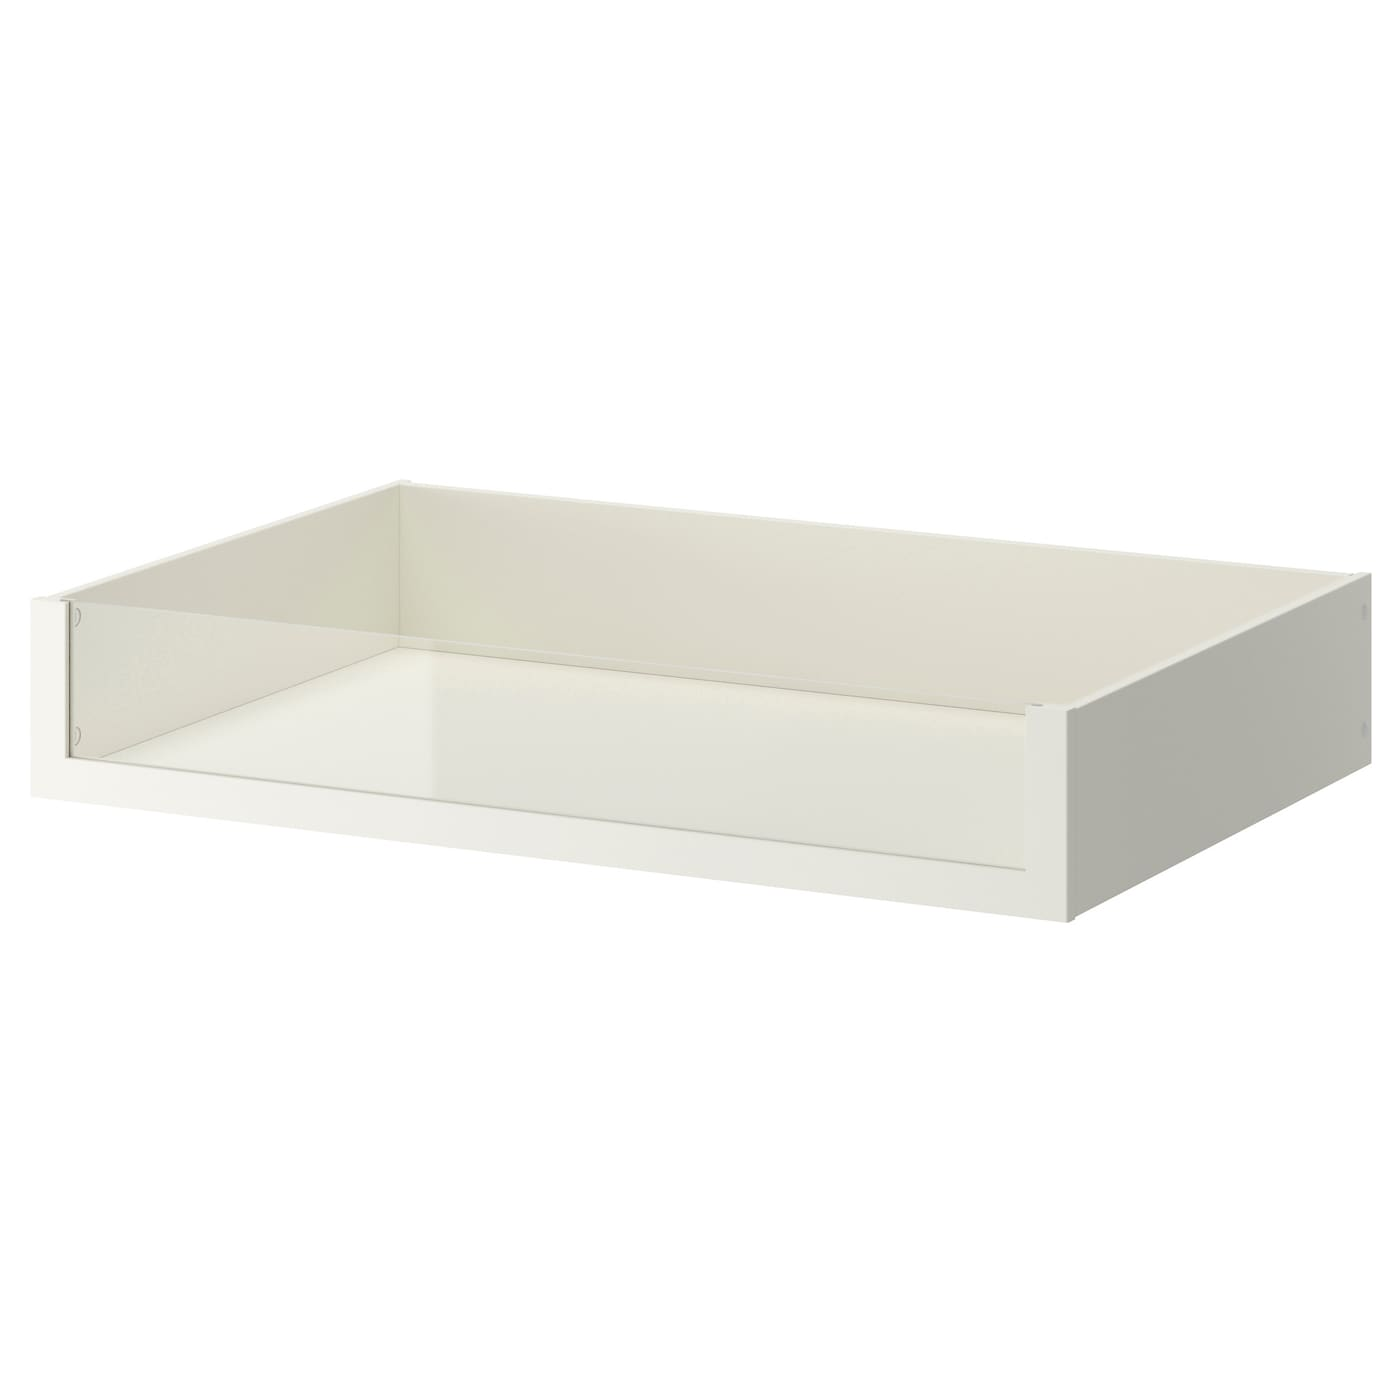 Komplement drawer with glass front white 100x58 cm ikea for Ikea complementi